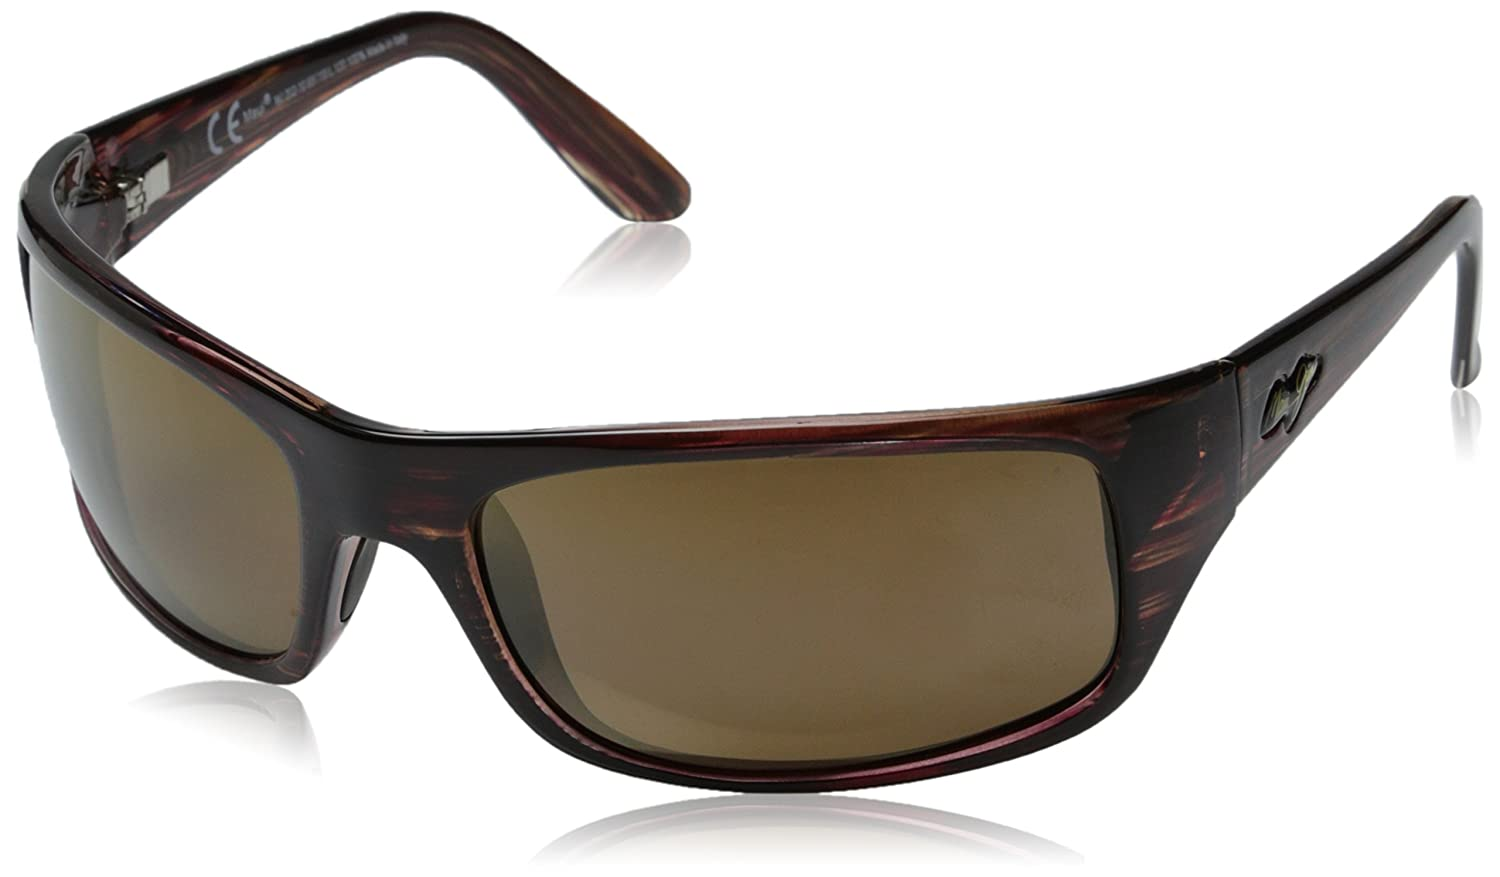 Amazon.com: Maui Jim - Peahi - Matte Black Frame - Blue Hawaii Polarized Lenses: Shoes